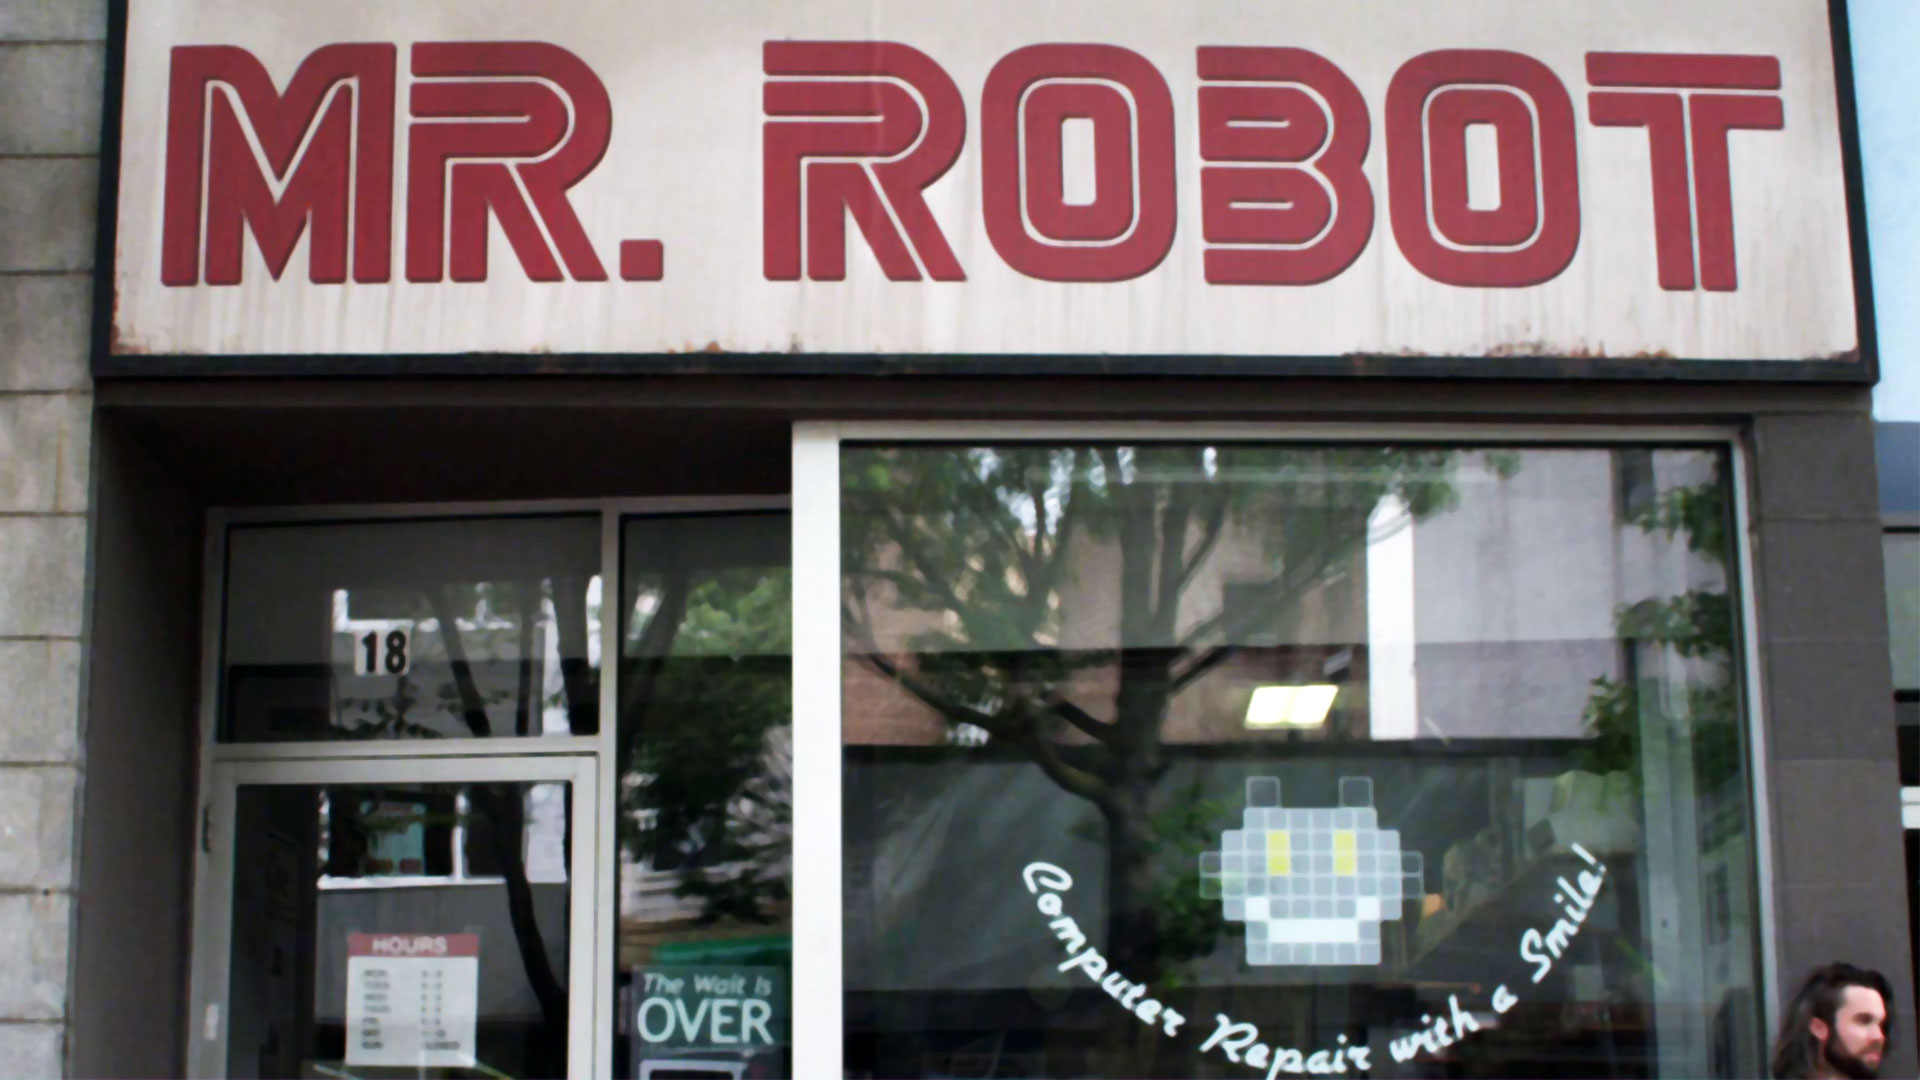 Mr Robot repair shop sign